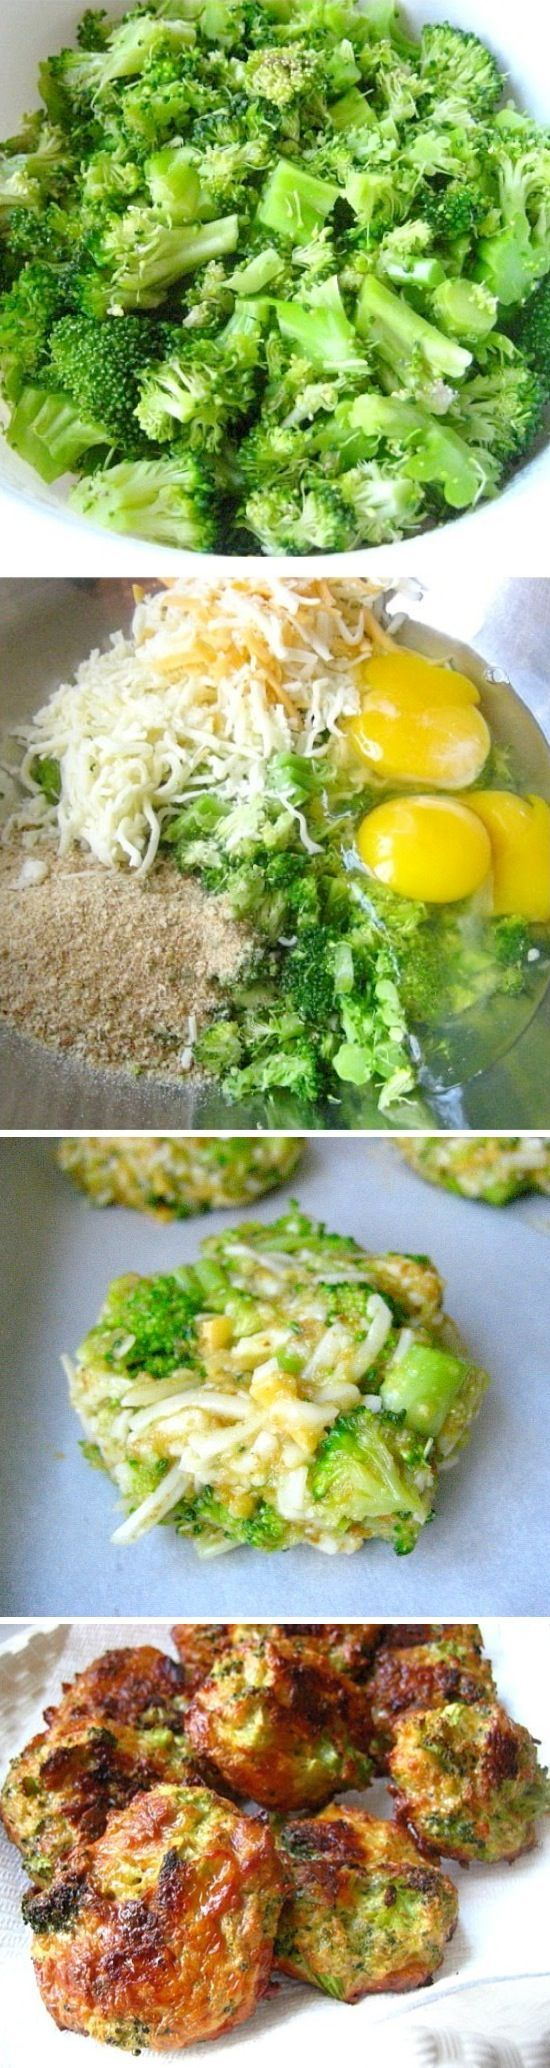 whipped these together with eggs, cheese, and italian breadcrumbs; all mixed together to form little broccoli patties.